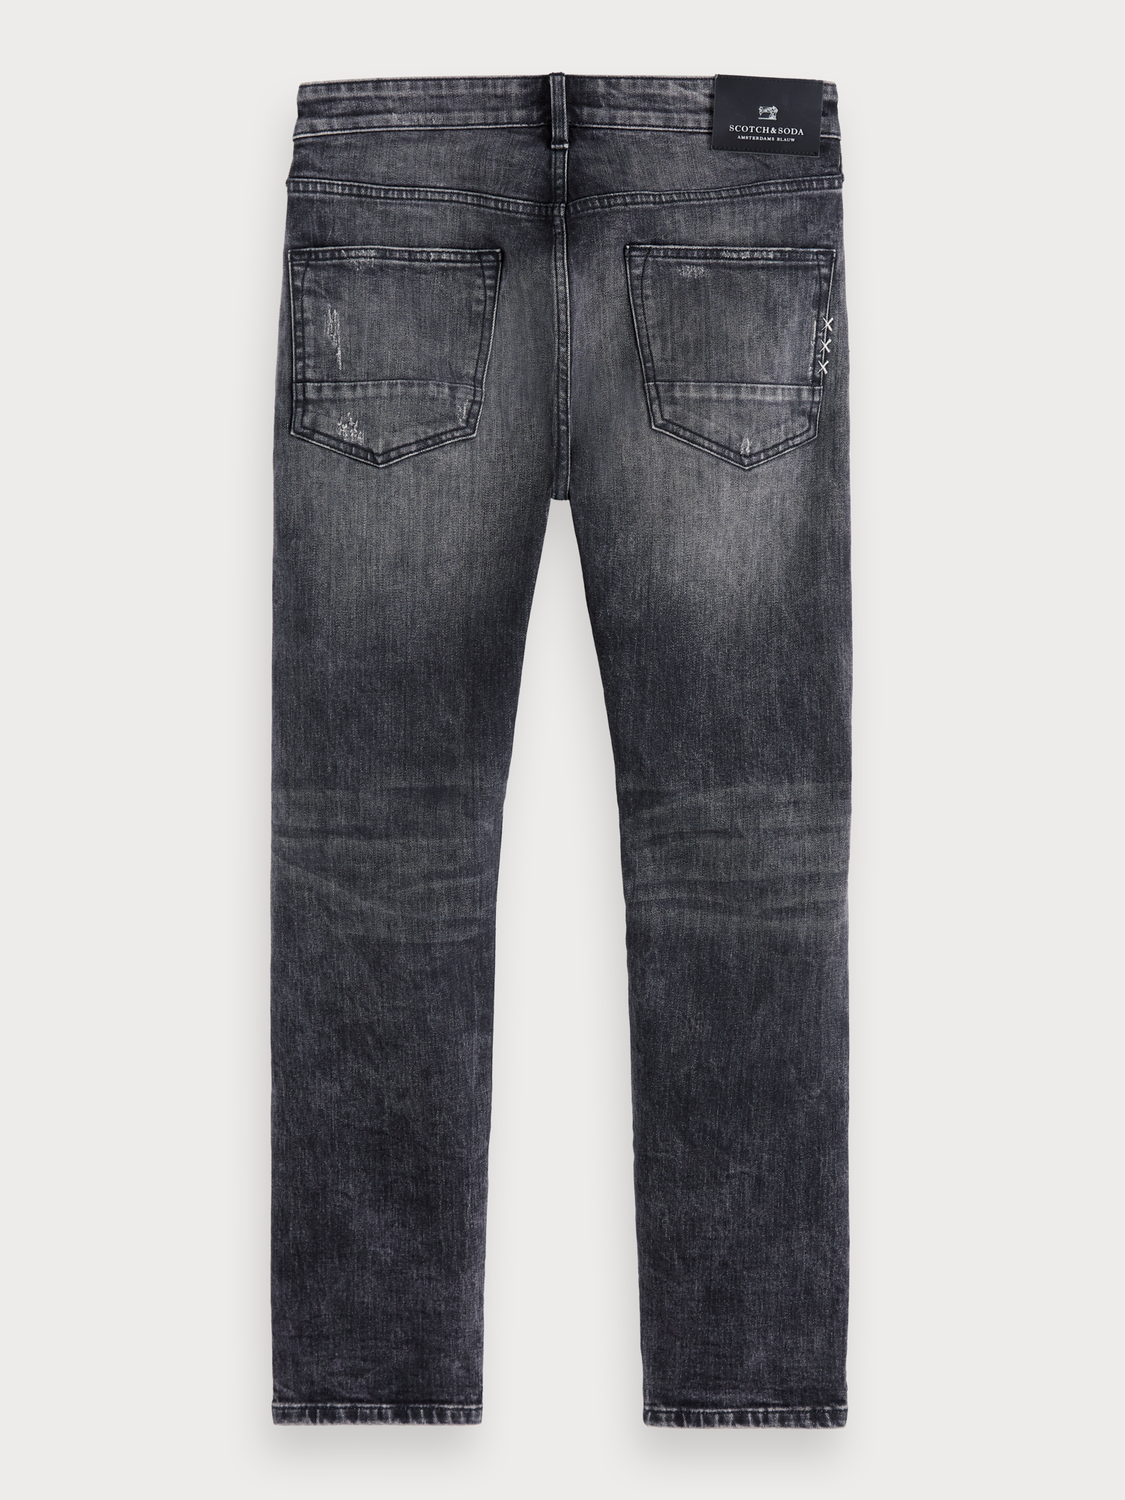 Herrar Ralston - Dark Pier | Regular slim fit